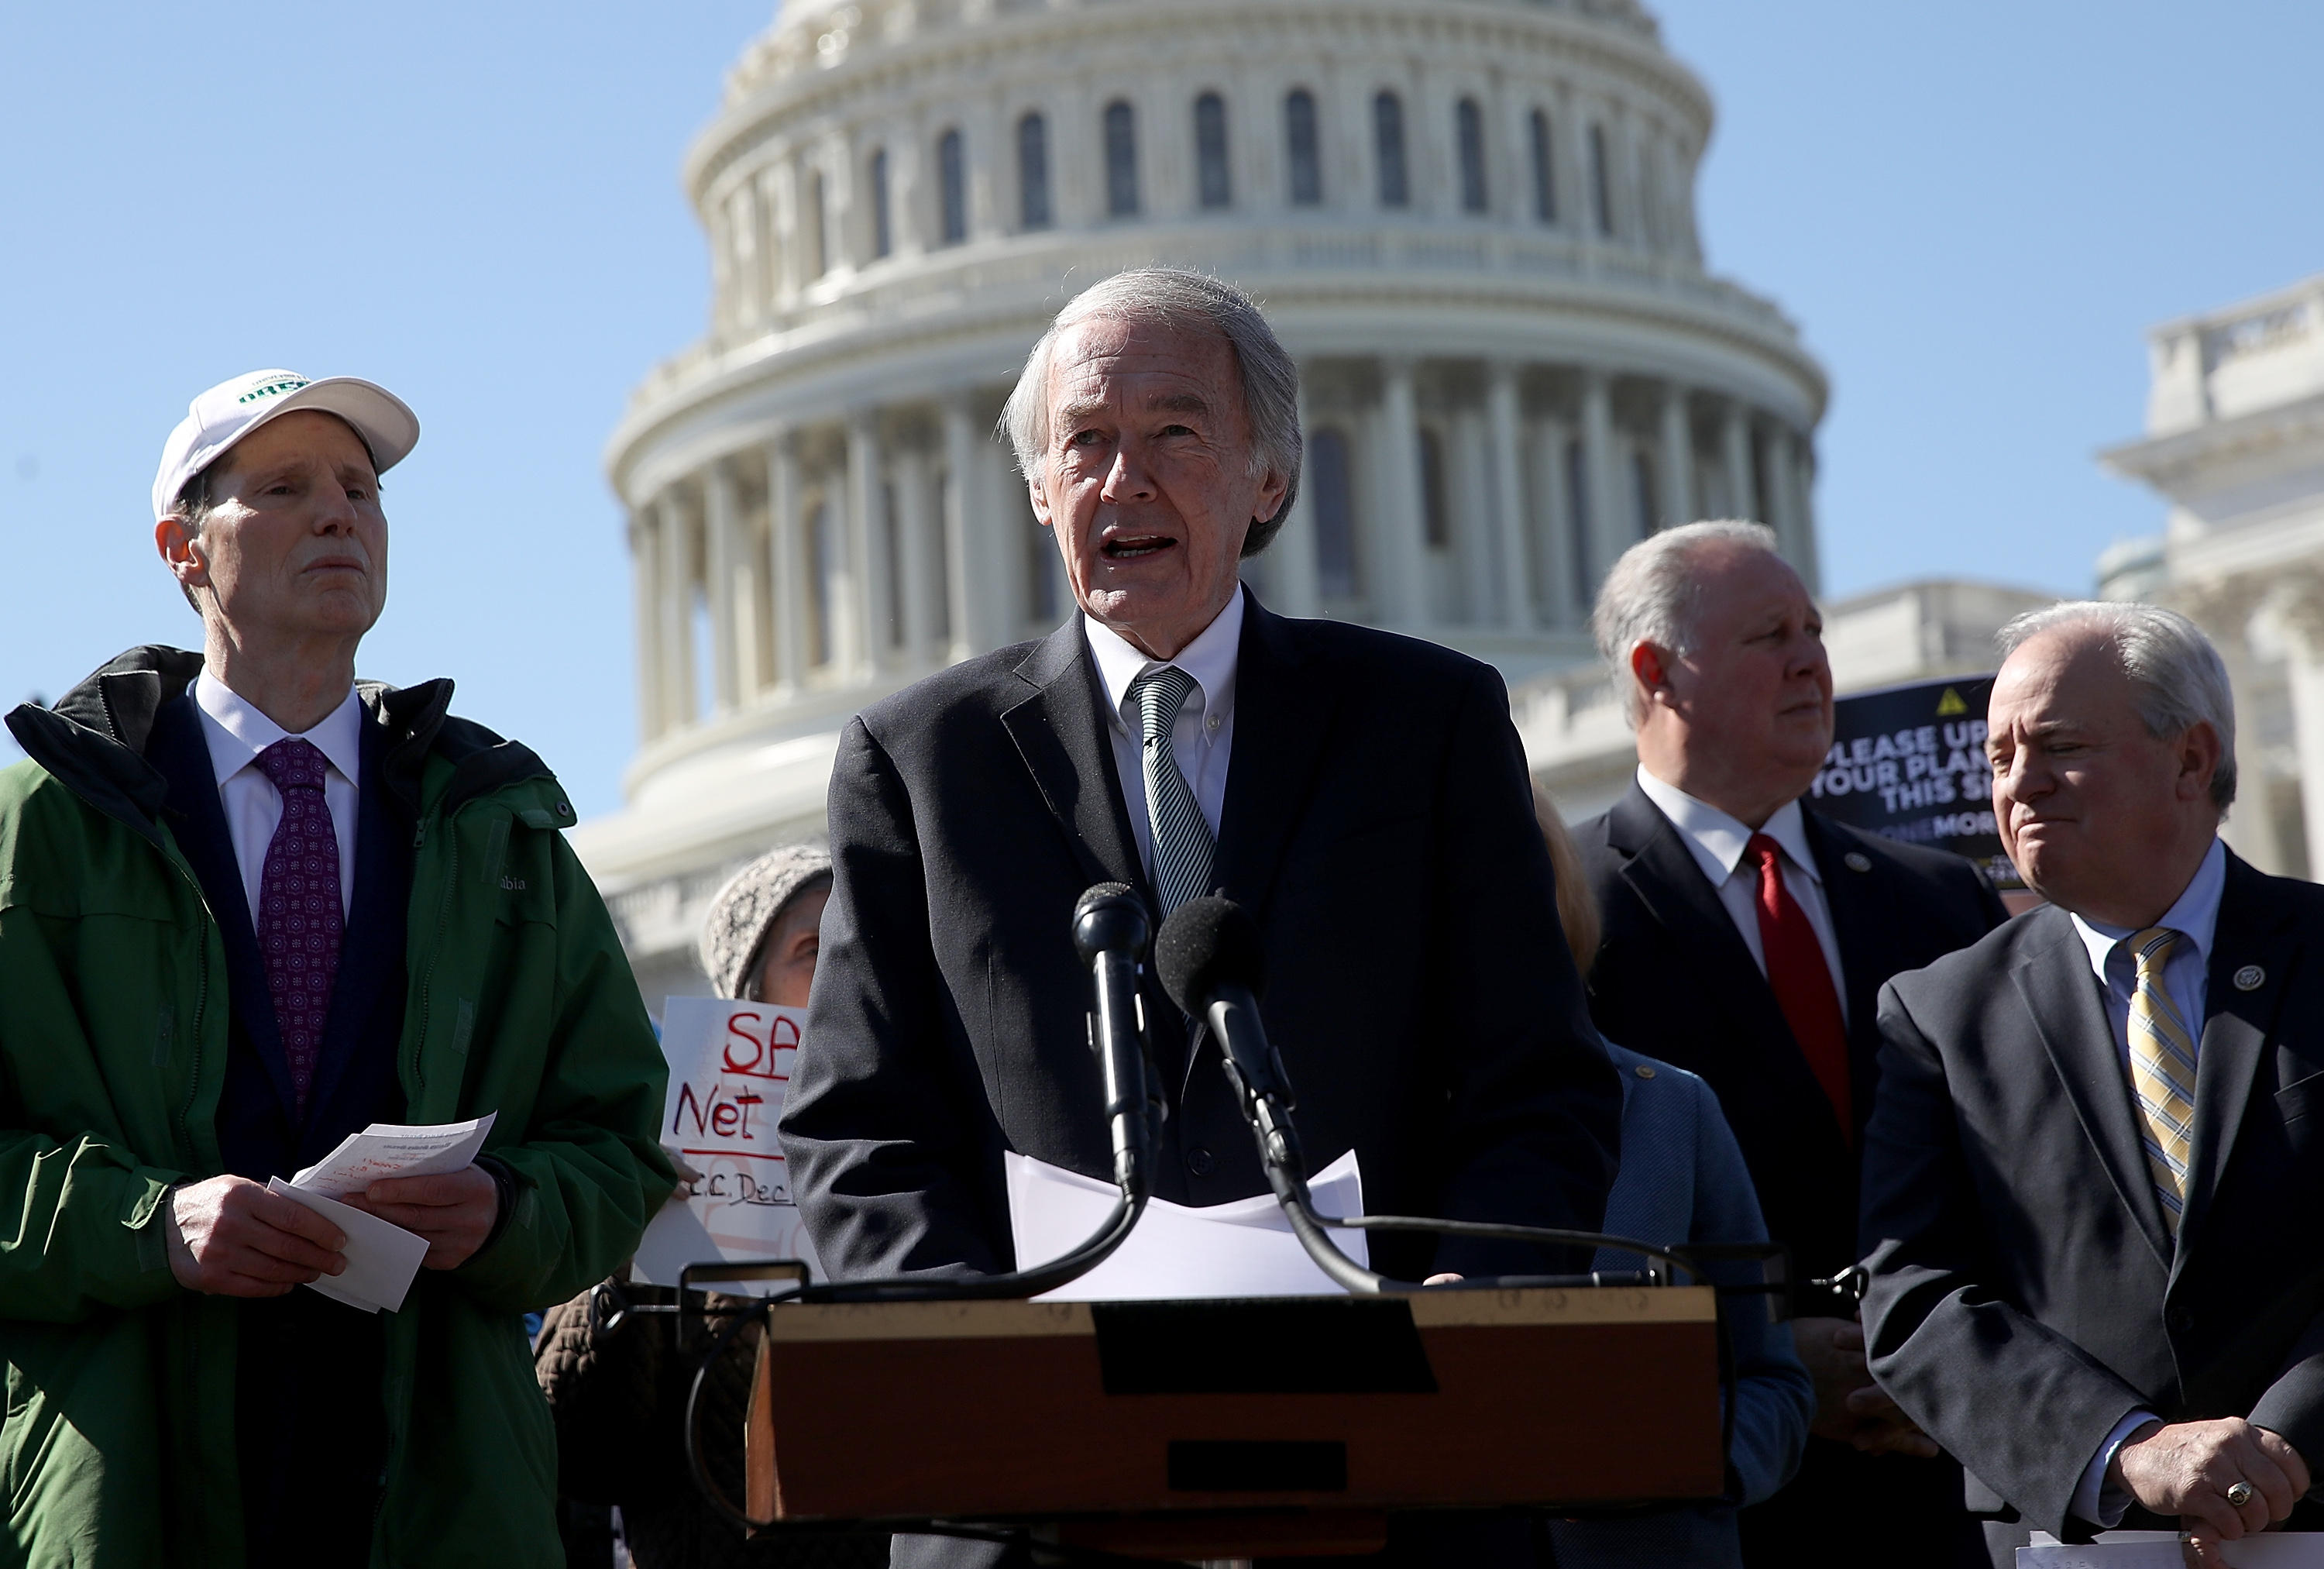 Democratic Sen. Ed Markey speaks at a news conference on net neutrality at the US Capitol.